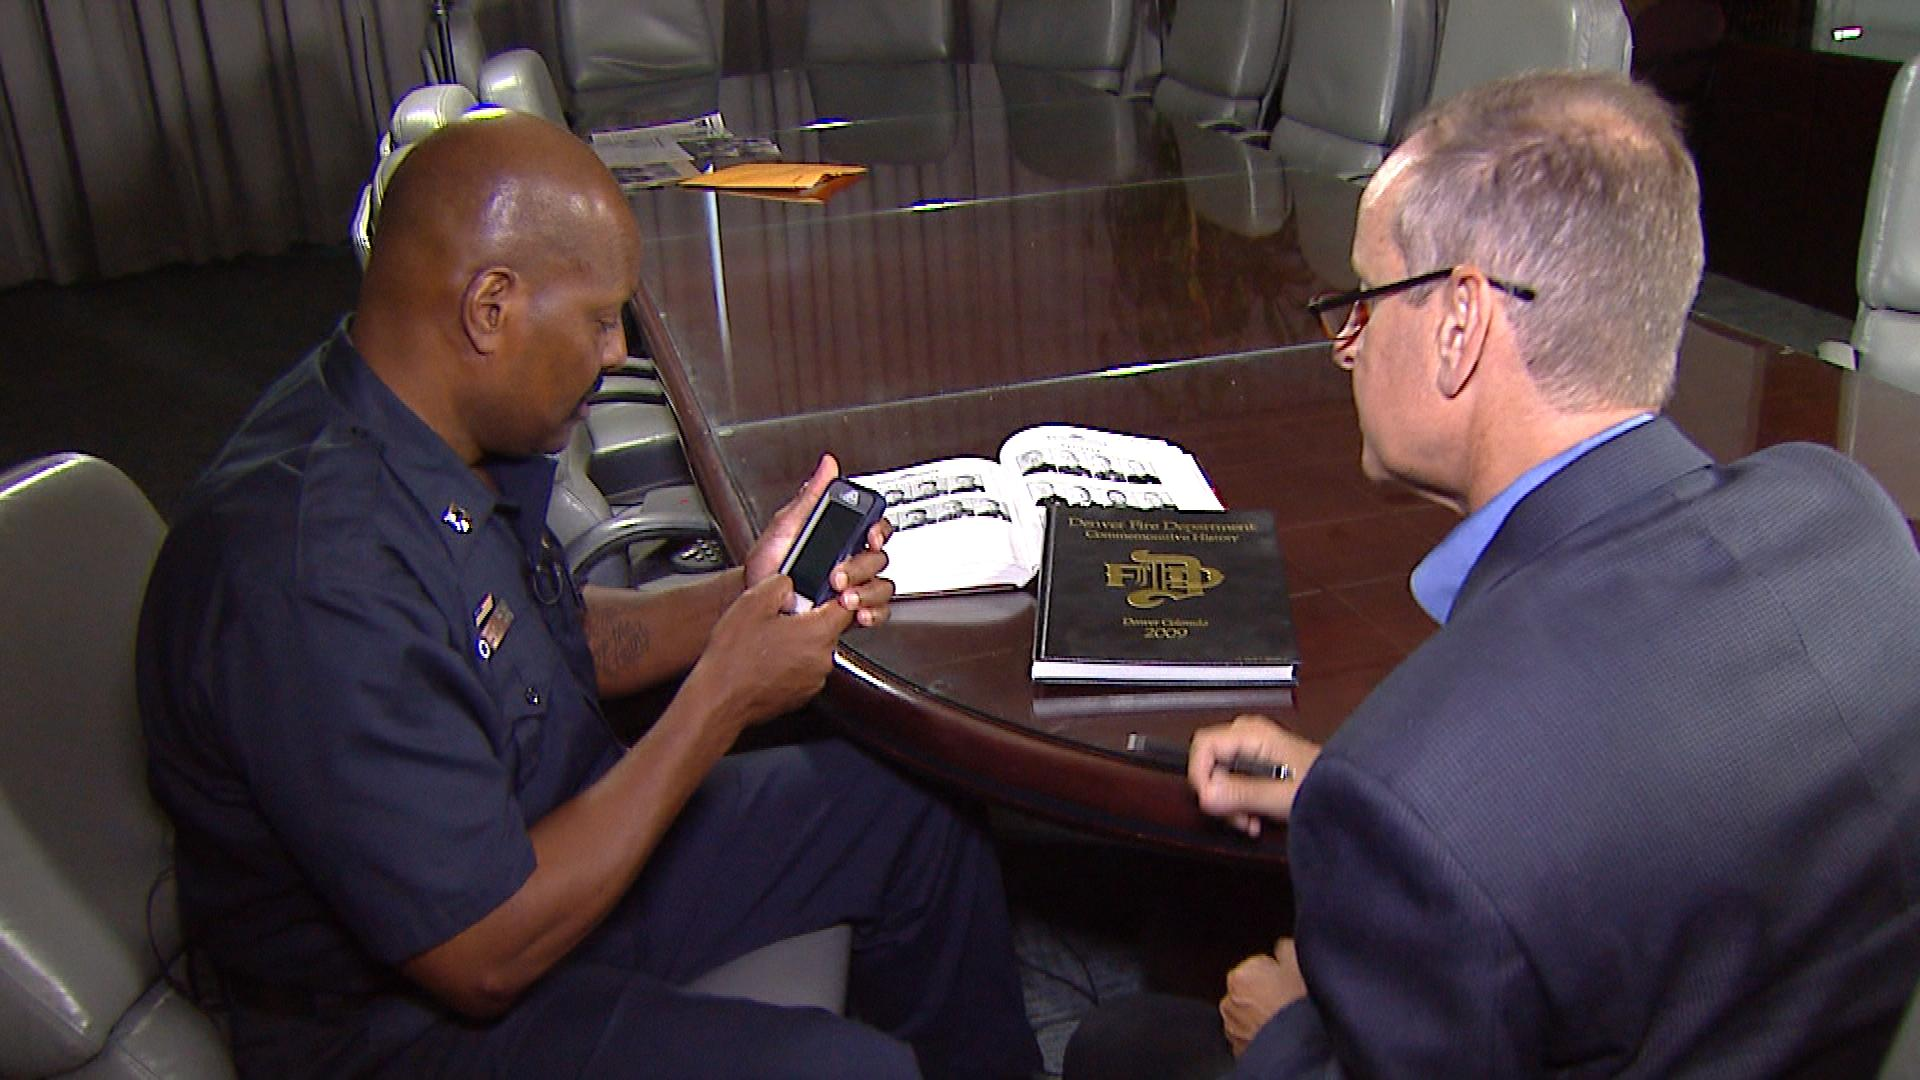 Harold Johnson shows the text message to CBS4's Brian Maass (credit: CBS)